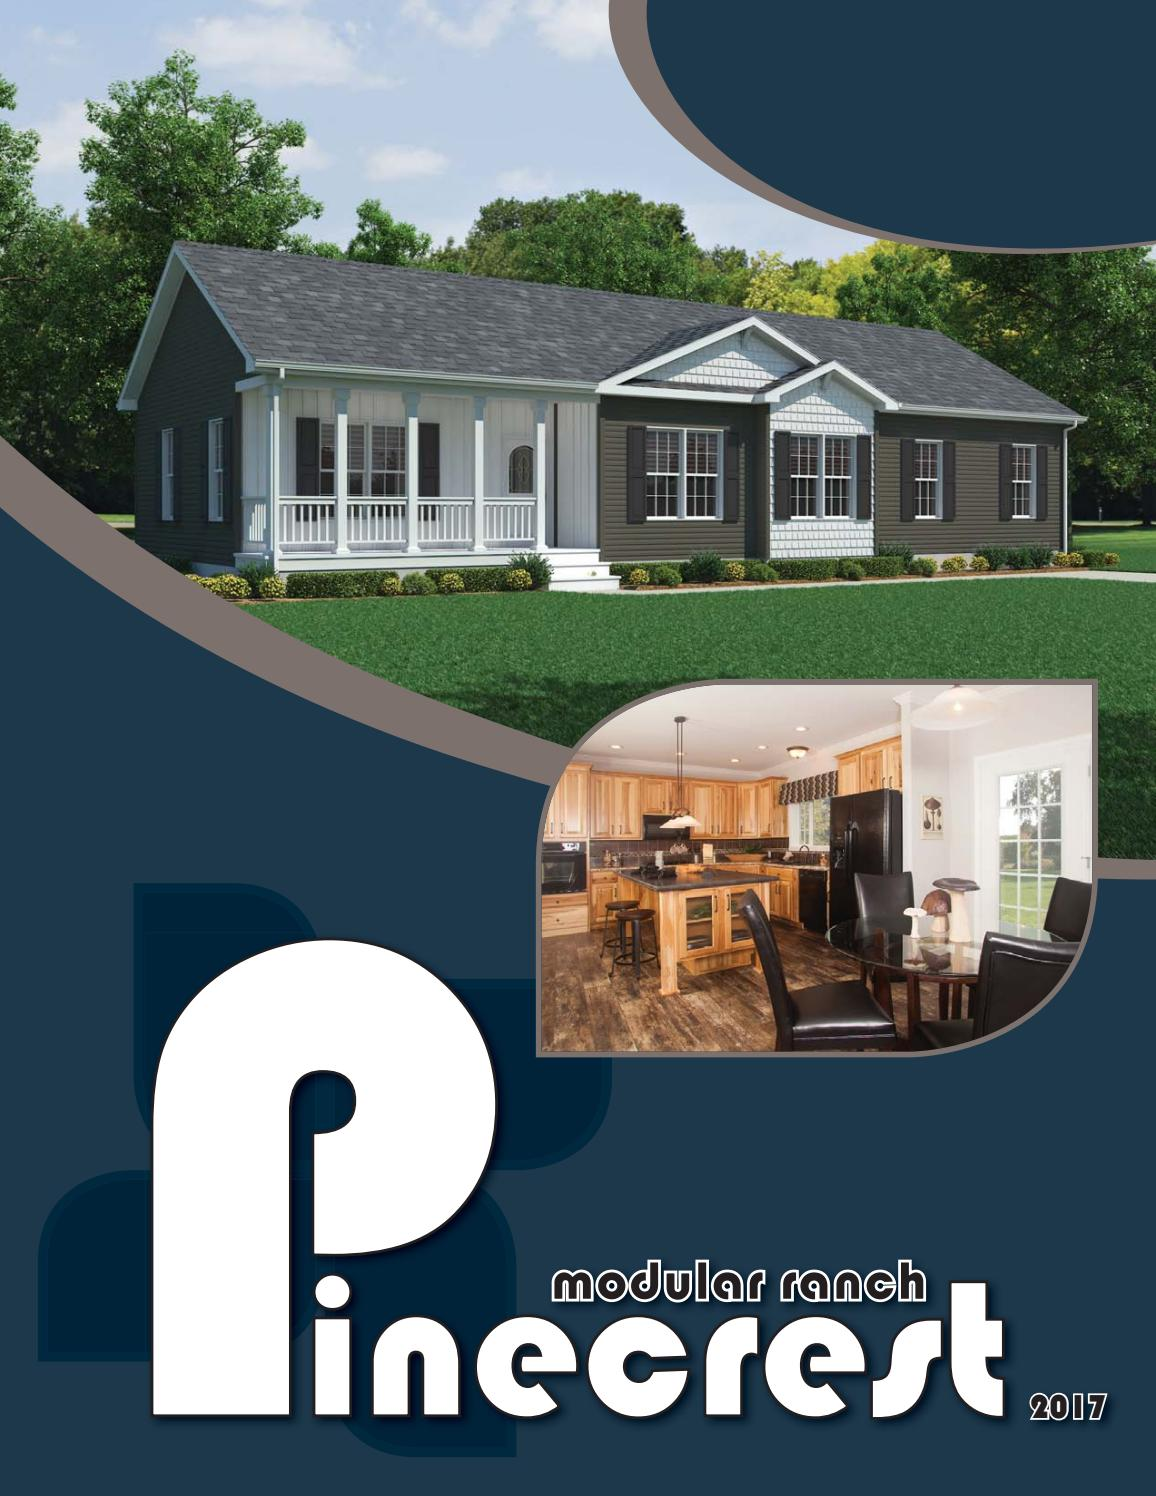 hight resolution of commodore homes of pennsylvania pinecrest modular 2017 by the commodore corporation issuu